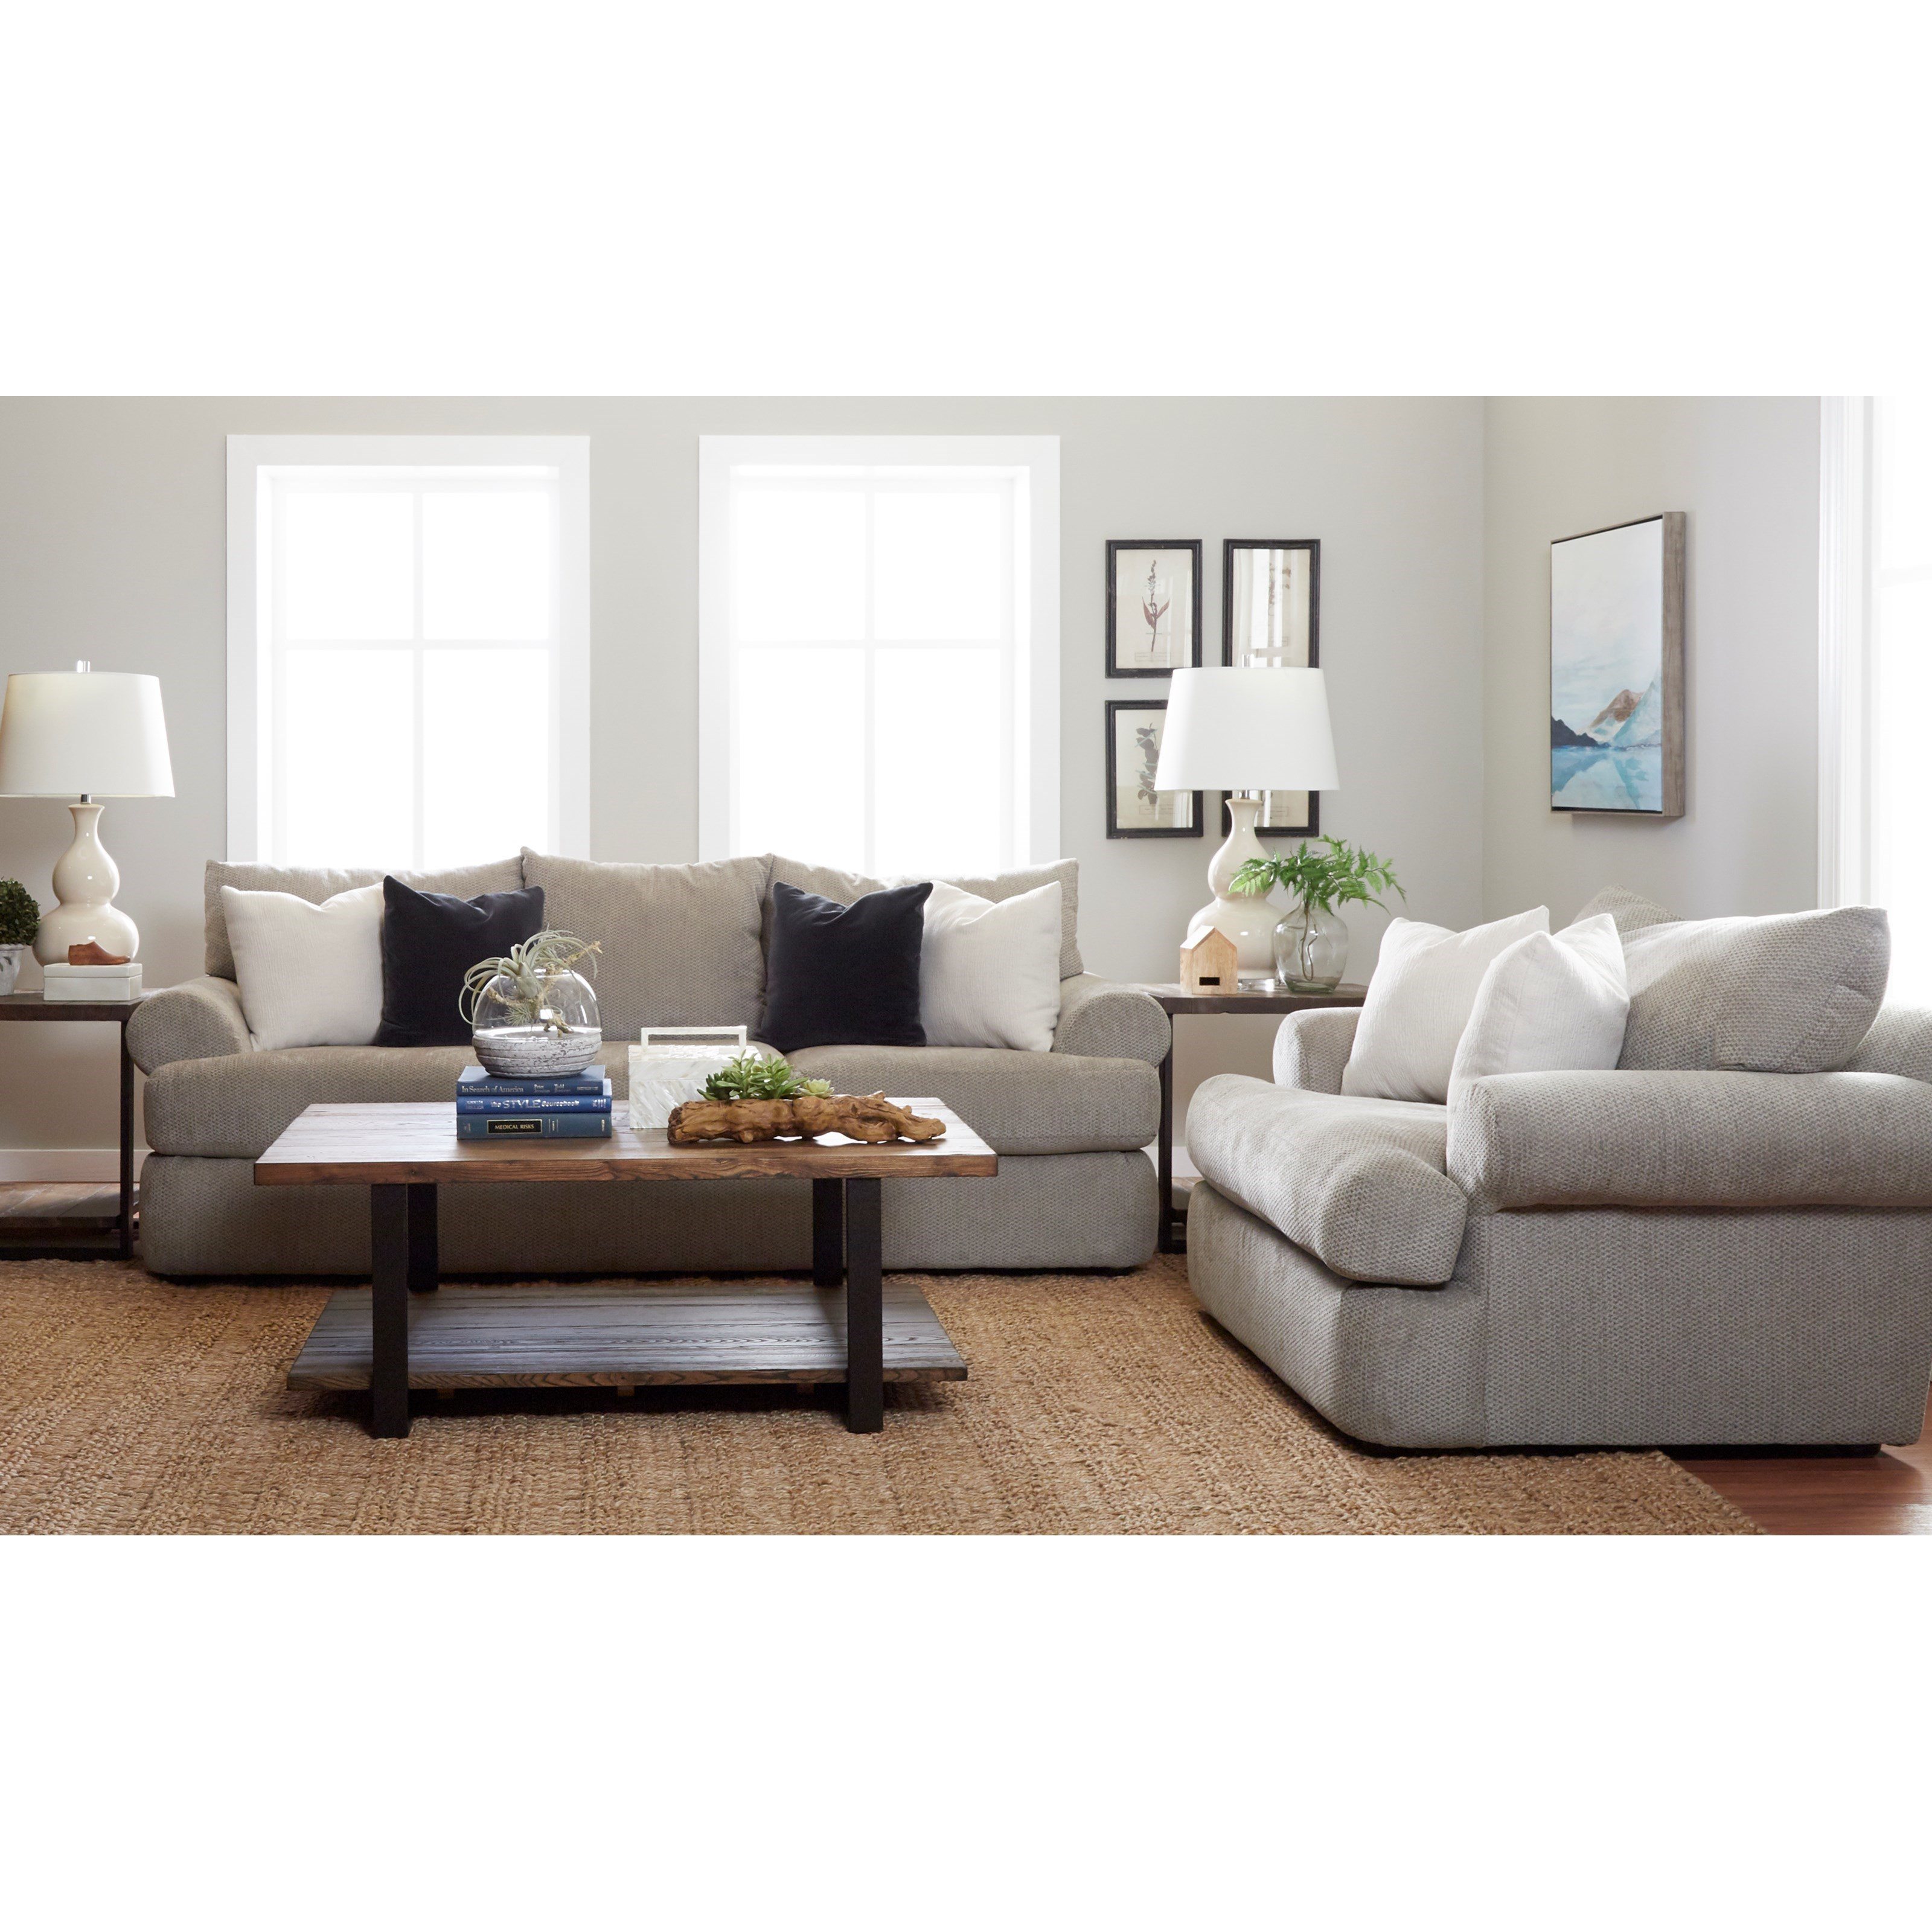 Cora Living Room Group by Klaussner at Johnny Janosik